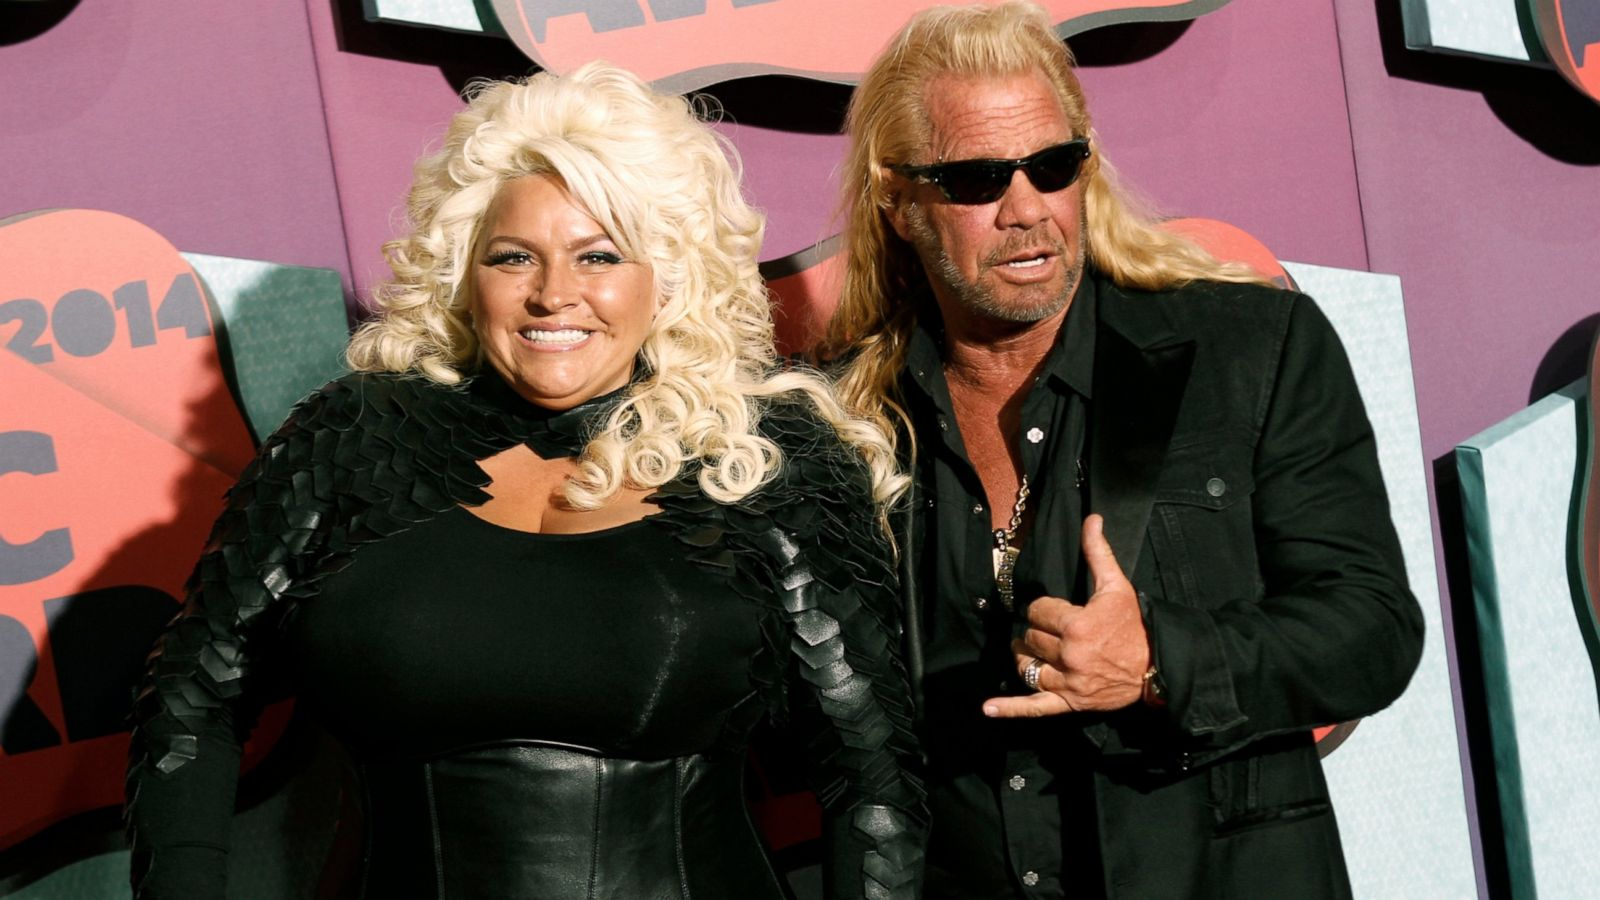 Funeral Held For Beth Chapman Of Dog The Bounty Hunter Abc News